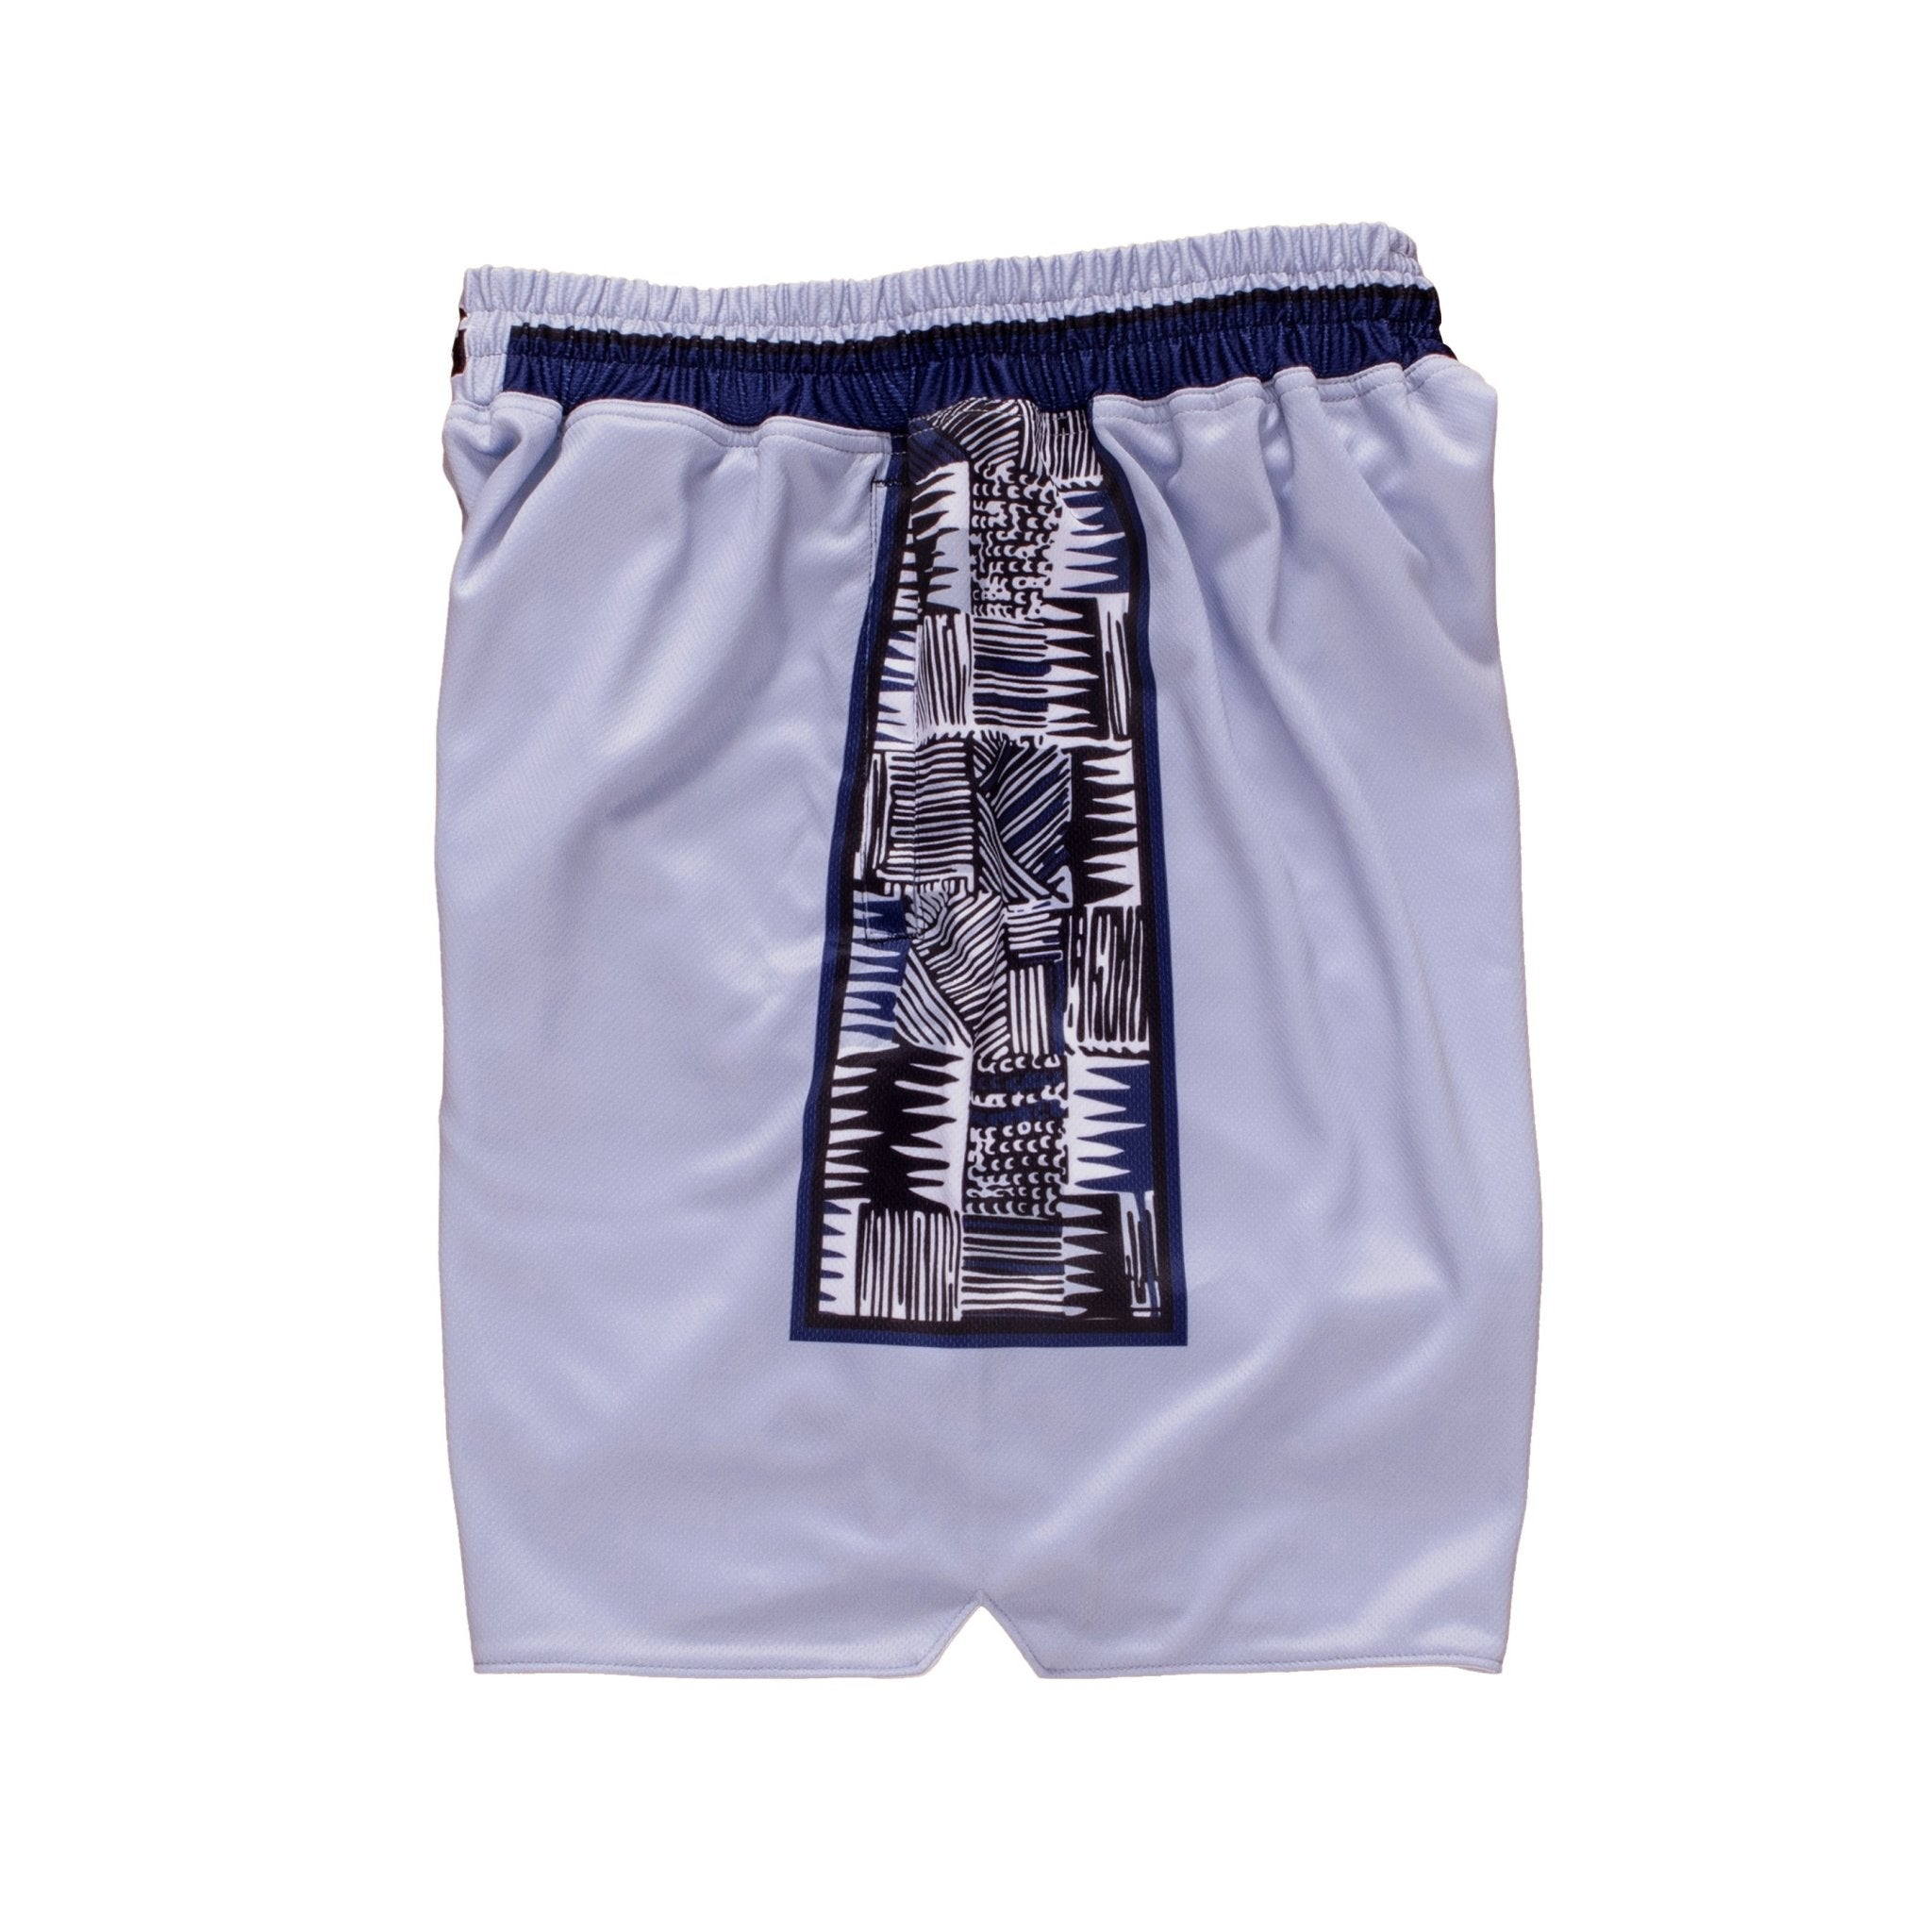 Georgetown Hoyas 1995-1996 Retro Shorts - SLAM